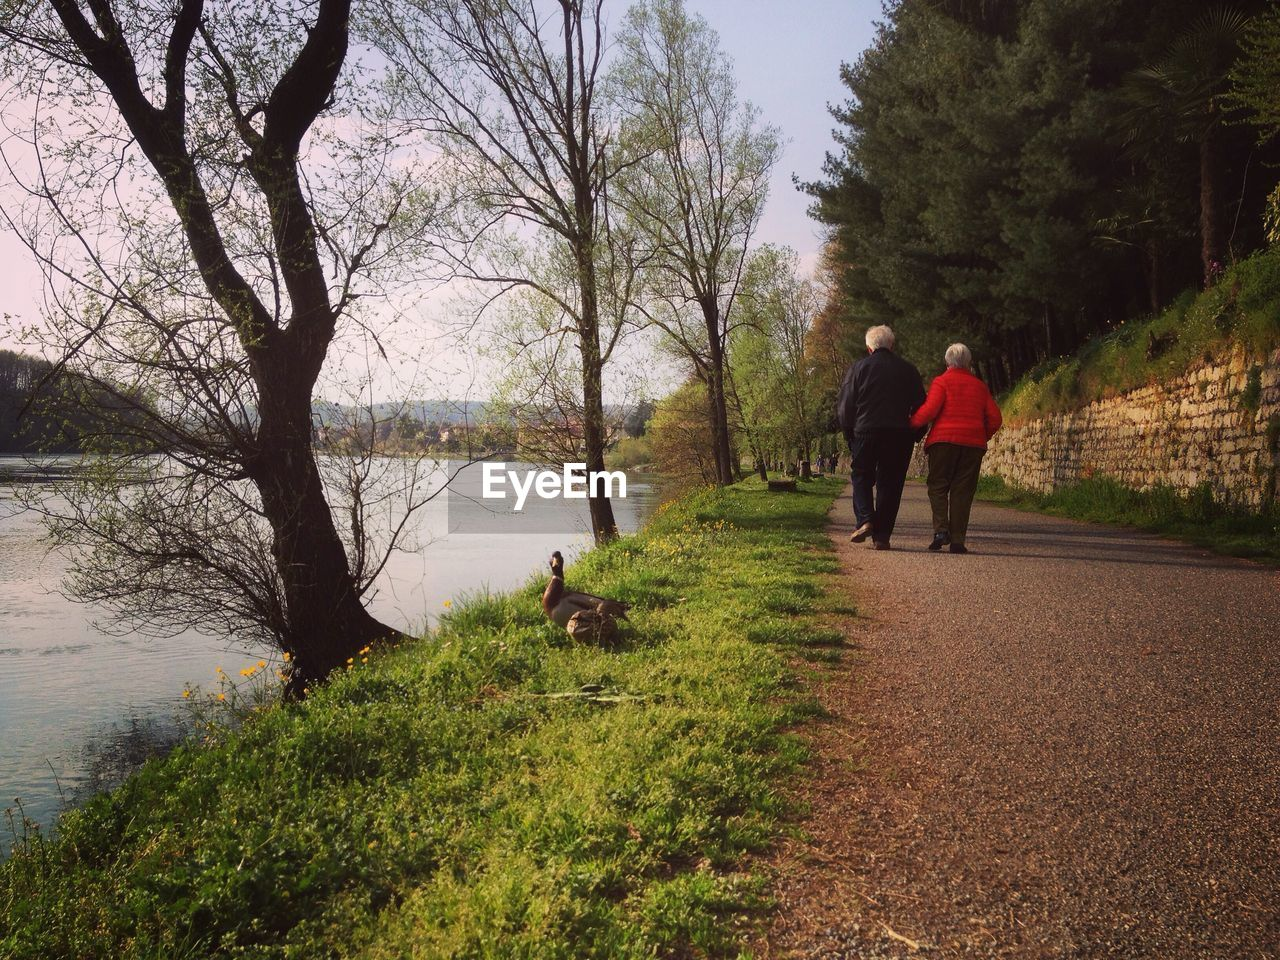 tree, rear view, plant, real people, togetherness, two people, men, women, adult, nature, water, leisure activity, full length, lifestyles, walking, people, day, bare tree, lake, outdoors, positive emotion, couple - relationship